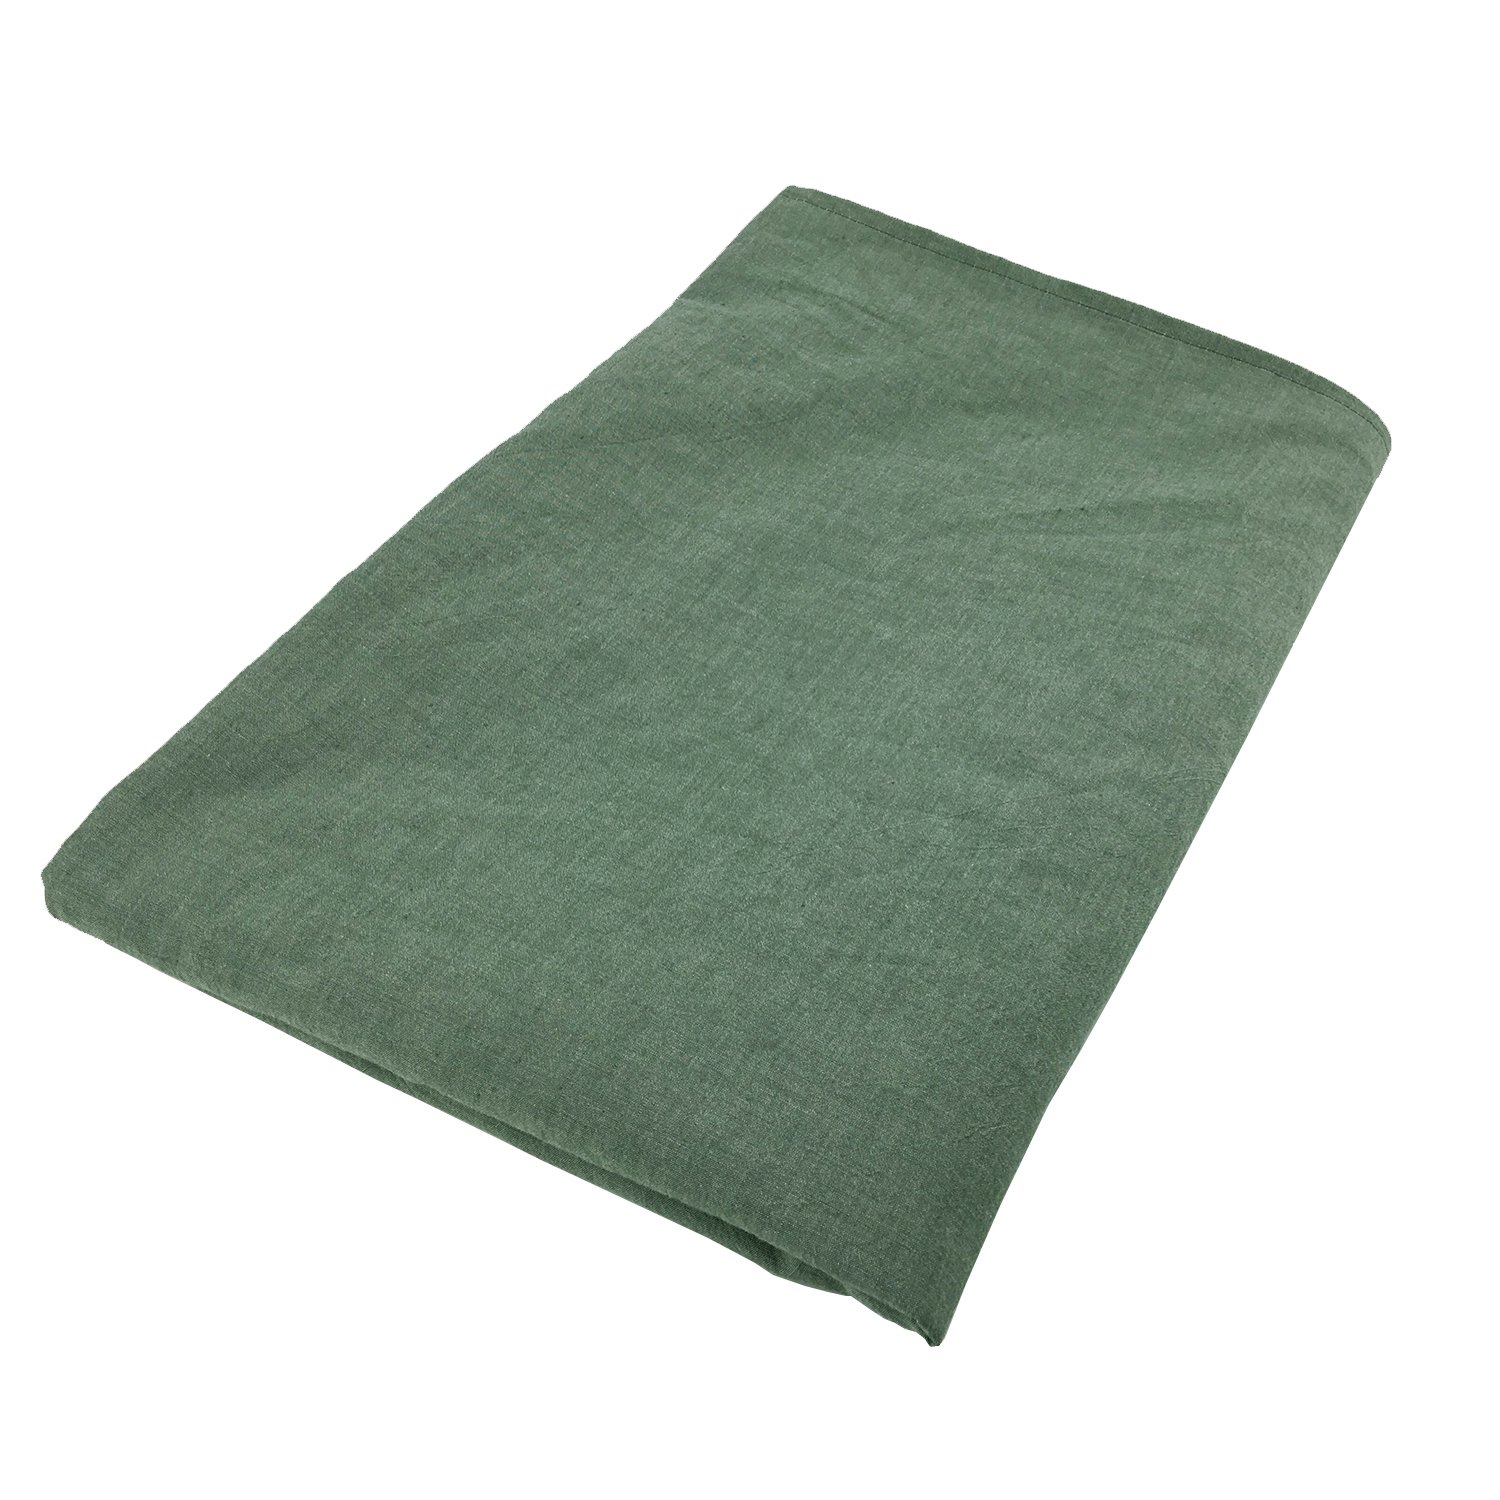 Hypnoser New Version Weighted Blanket Cover for Child and Adults,Ultra Soft,Washed Cotton Fabric,48 x 72,Light Greyish-Green 48 x 72